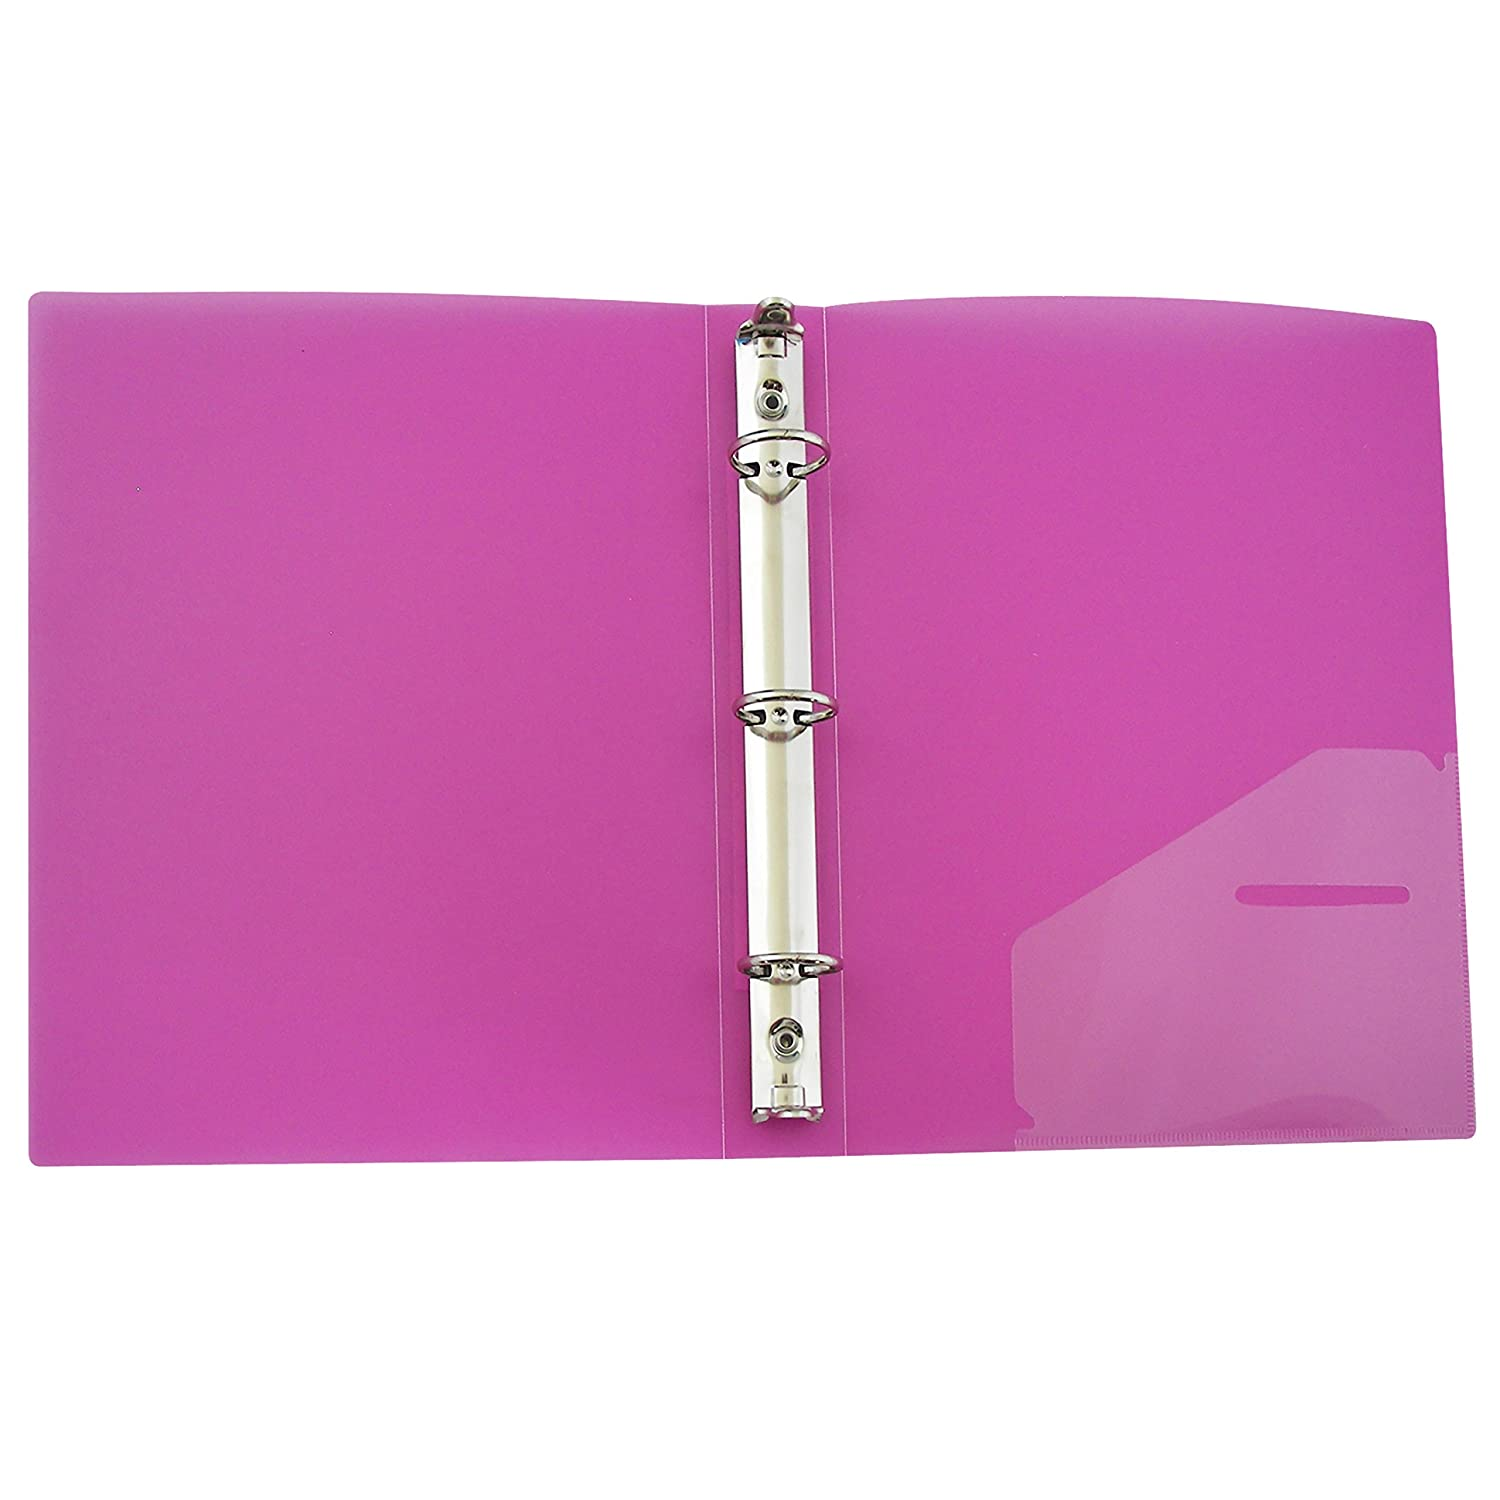 C-Line Mini Binder Starter Kit, Includes Binder, Index Dividers, Filler Paper and Binder Pockets, Colors May Vary, 1 Each (30100) C-Line Products Inc.